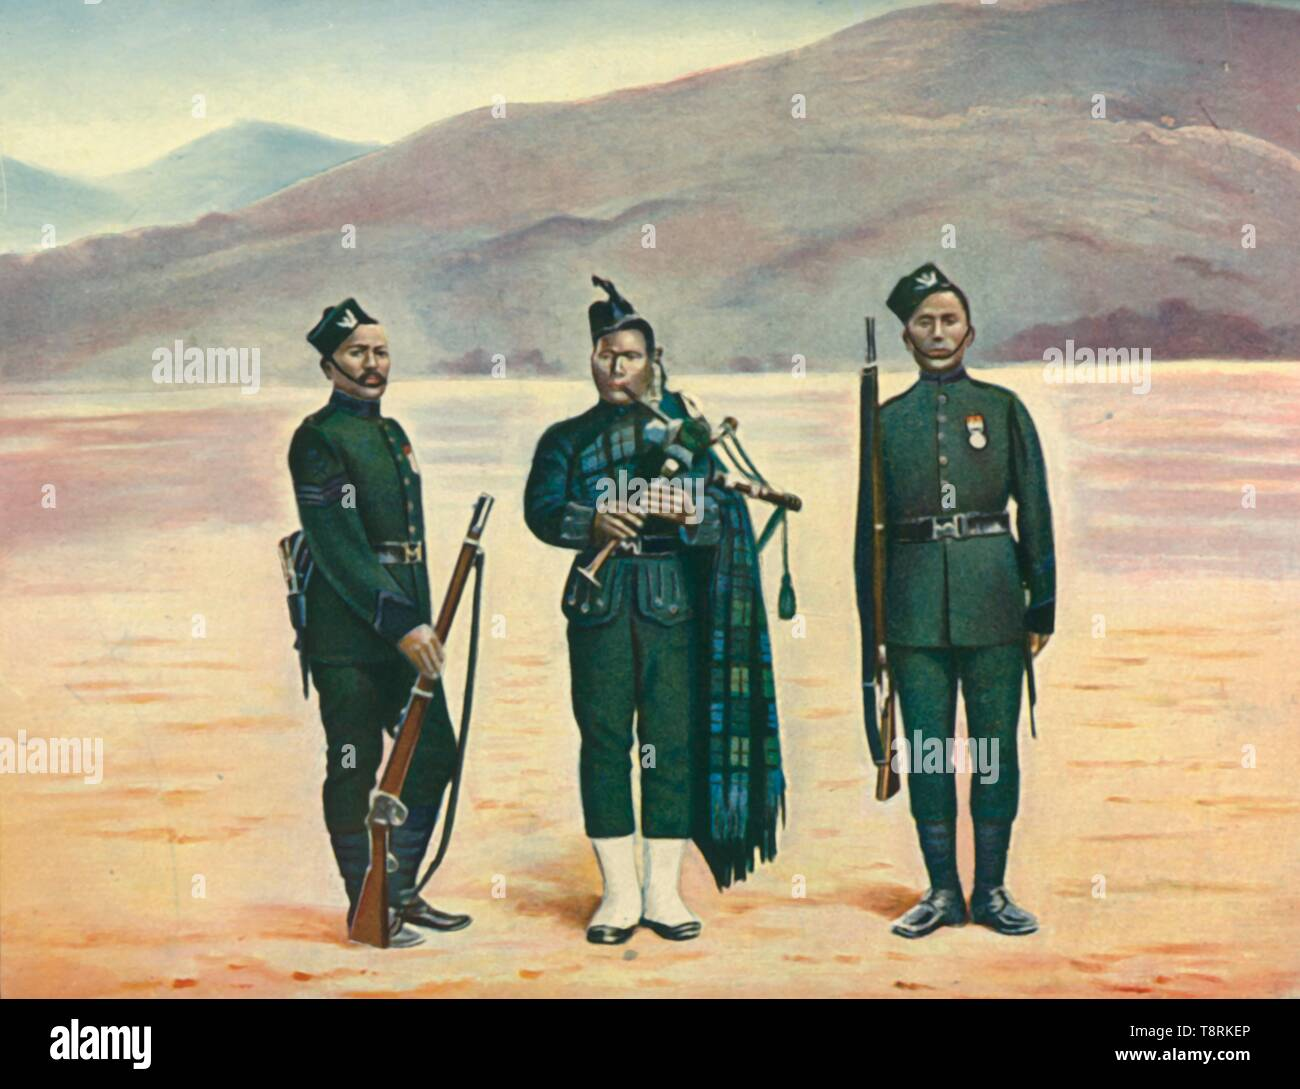 "'The Fifth Gurkhas', 1901. Nepalese soldiers during the period of the British Raj. Gurkha soldiers have been recruited to the British Army since the 19th century. From ""The Life and Deeds of Earl Roberts, Vol. II. - To The Abdication of Yakub Khan"", by J. Maclaren Cobban. [T. C. & E. C. Jack, Edinburgh, 1901] - Stock Image"